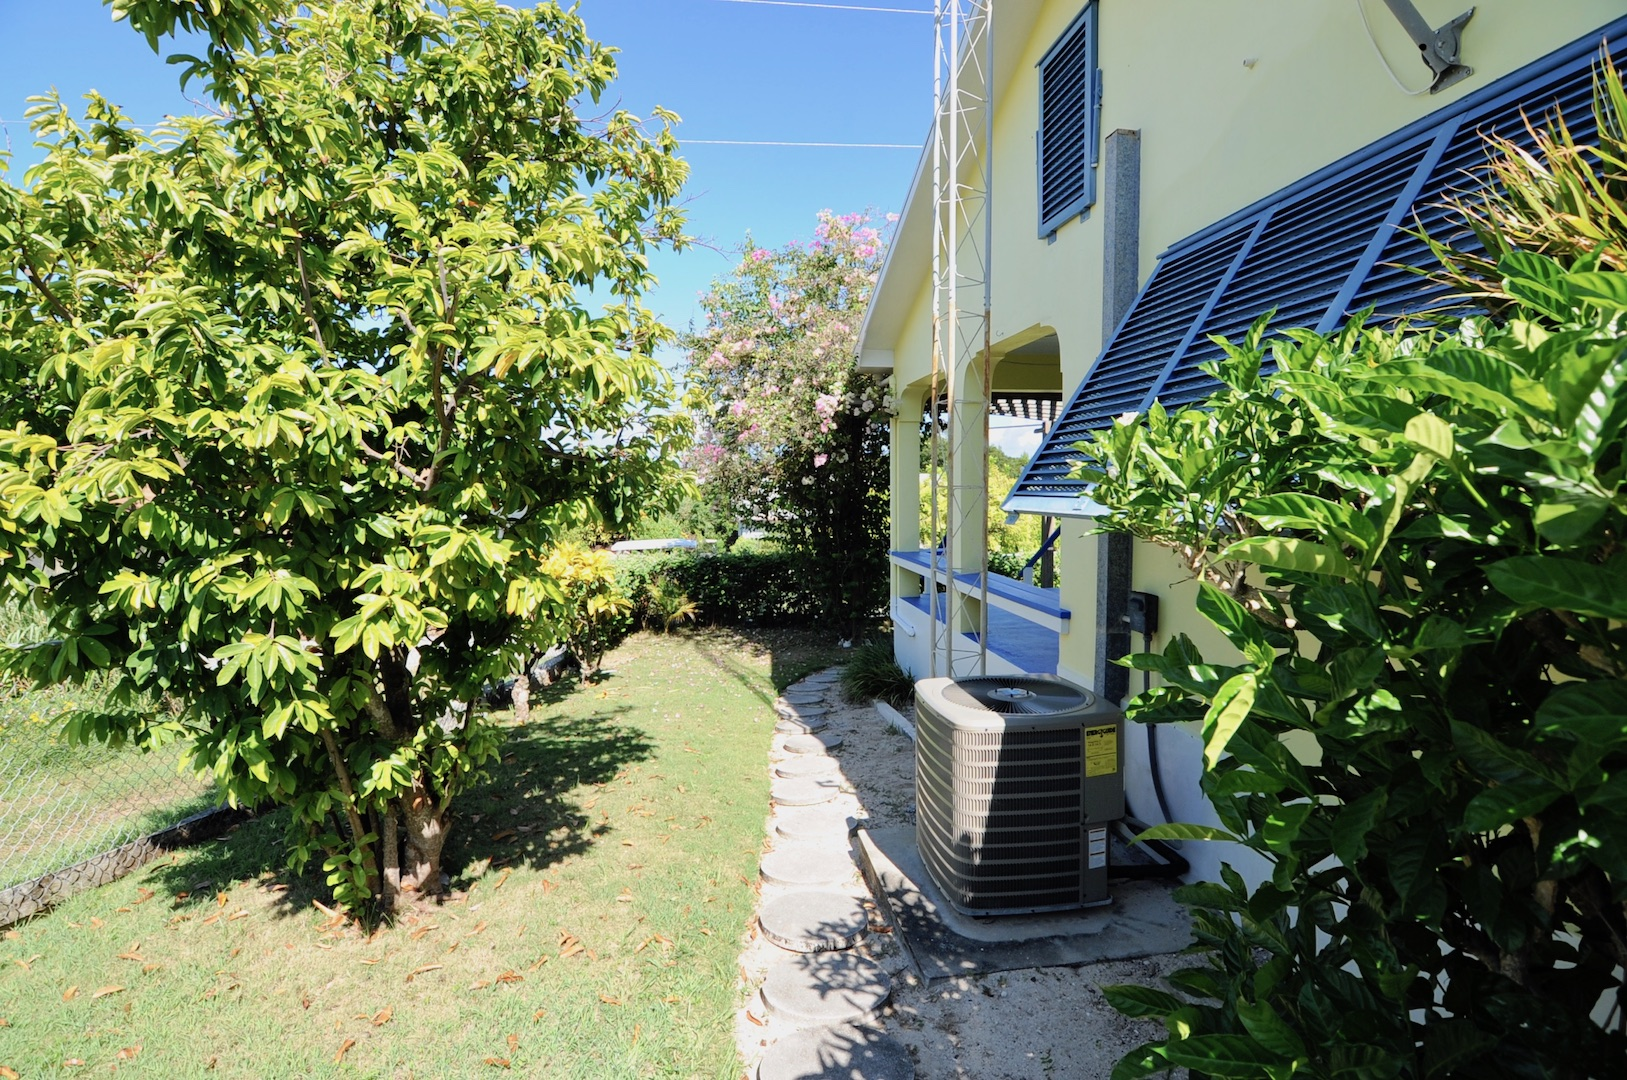 Home for sale in Man-O-War Cay Abaco Bahamas with mature fruit trees Sour Sop Avocados